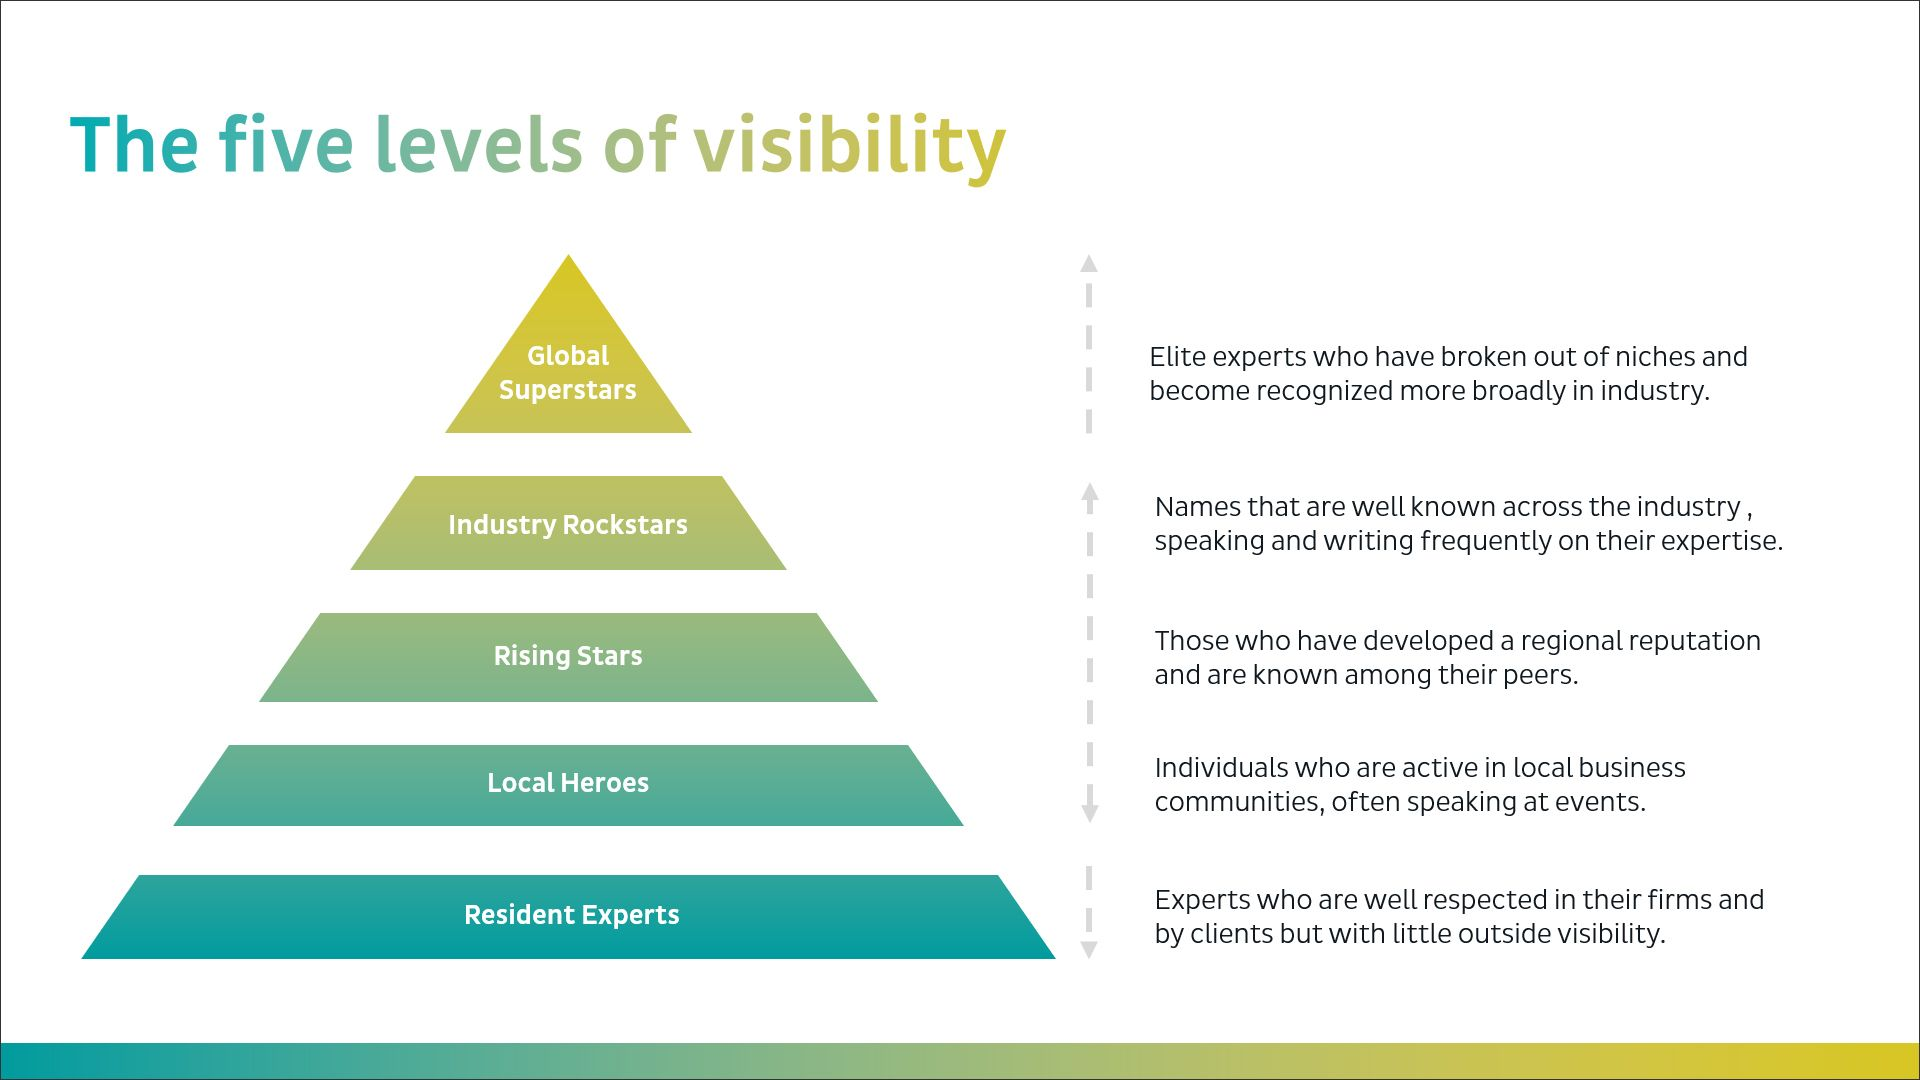 Levels of Visibility